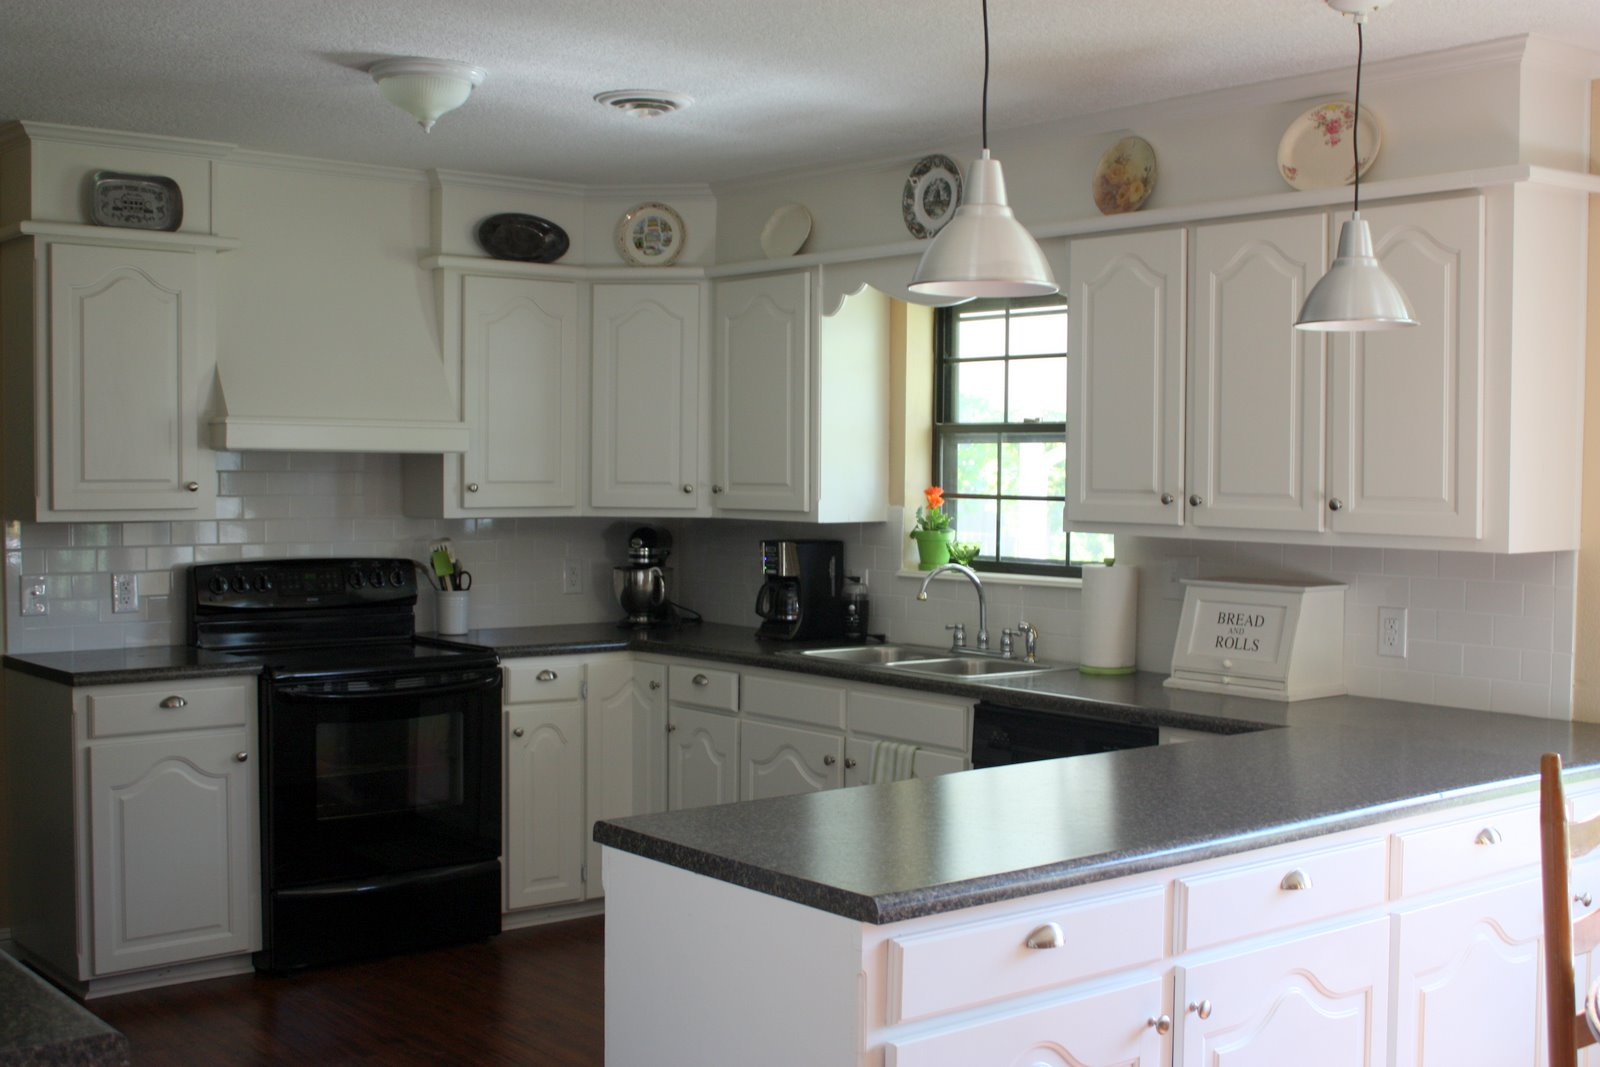 painted kitchen cabinets with black appliances. Painted Kitchen Cabinets With Black Appliances